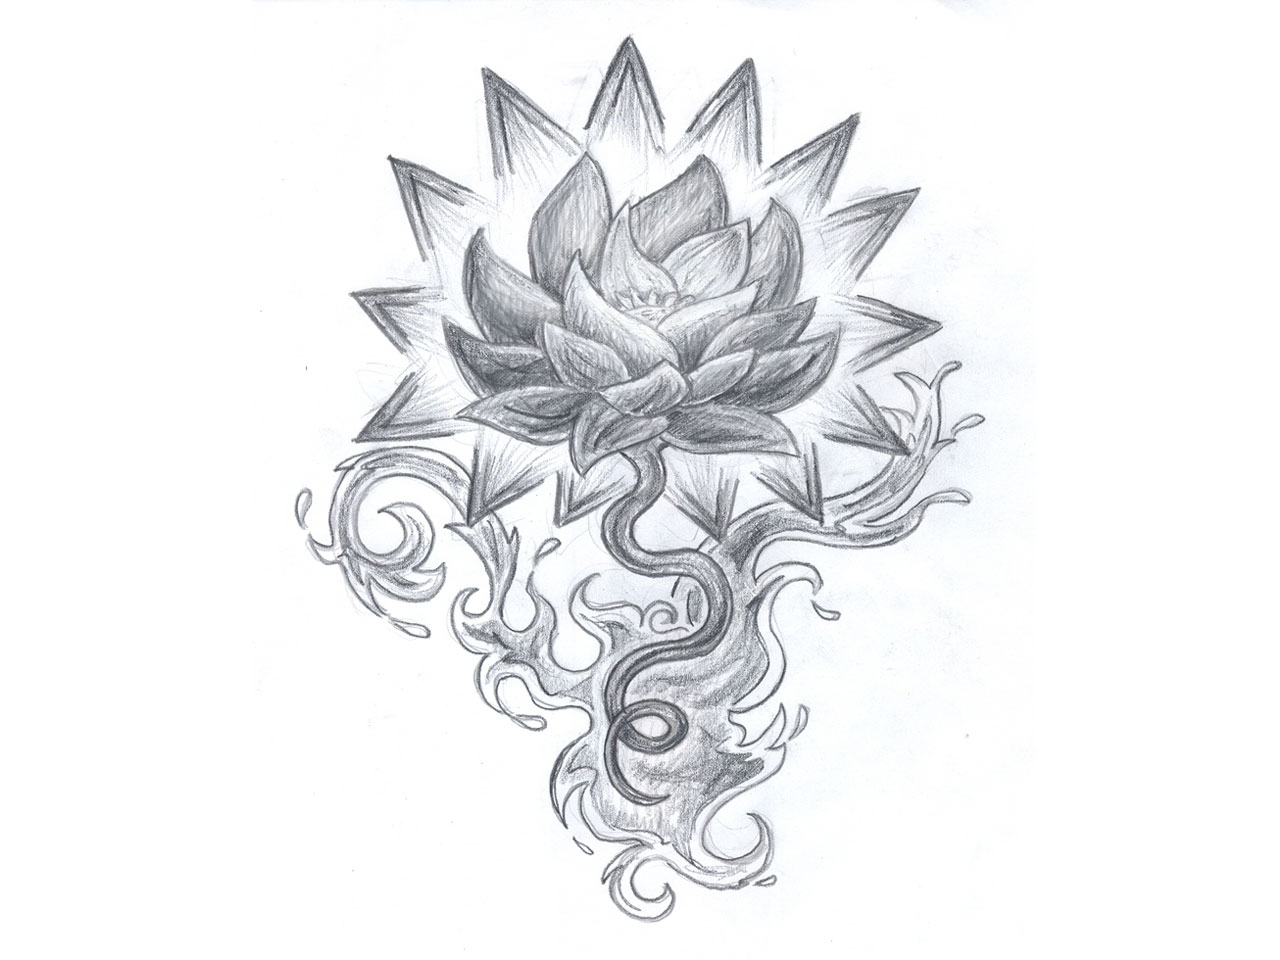 Black Line Flower Drawing : Stock photo hand drawn flower design sketch in black ink on brown